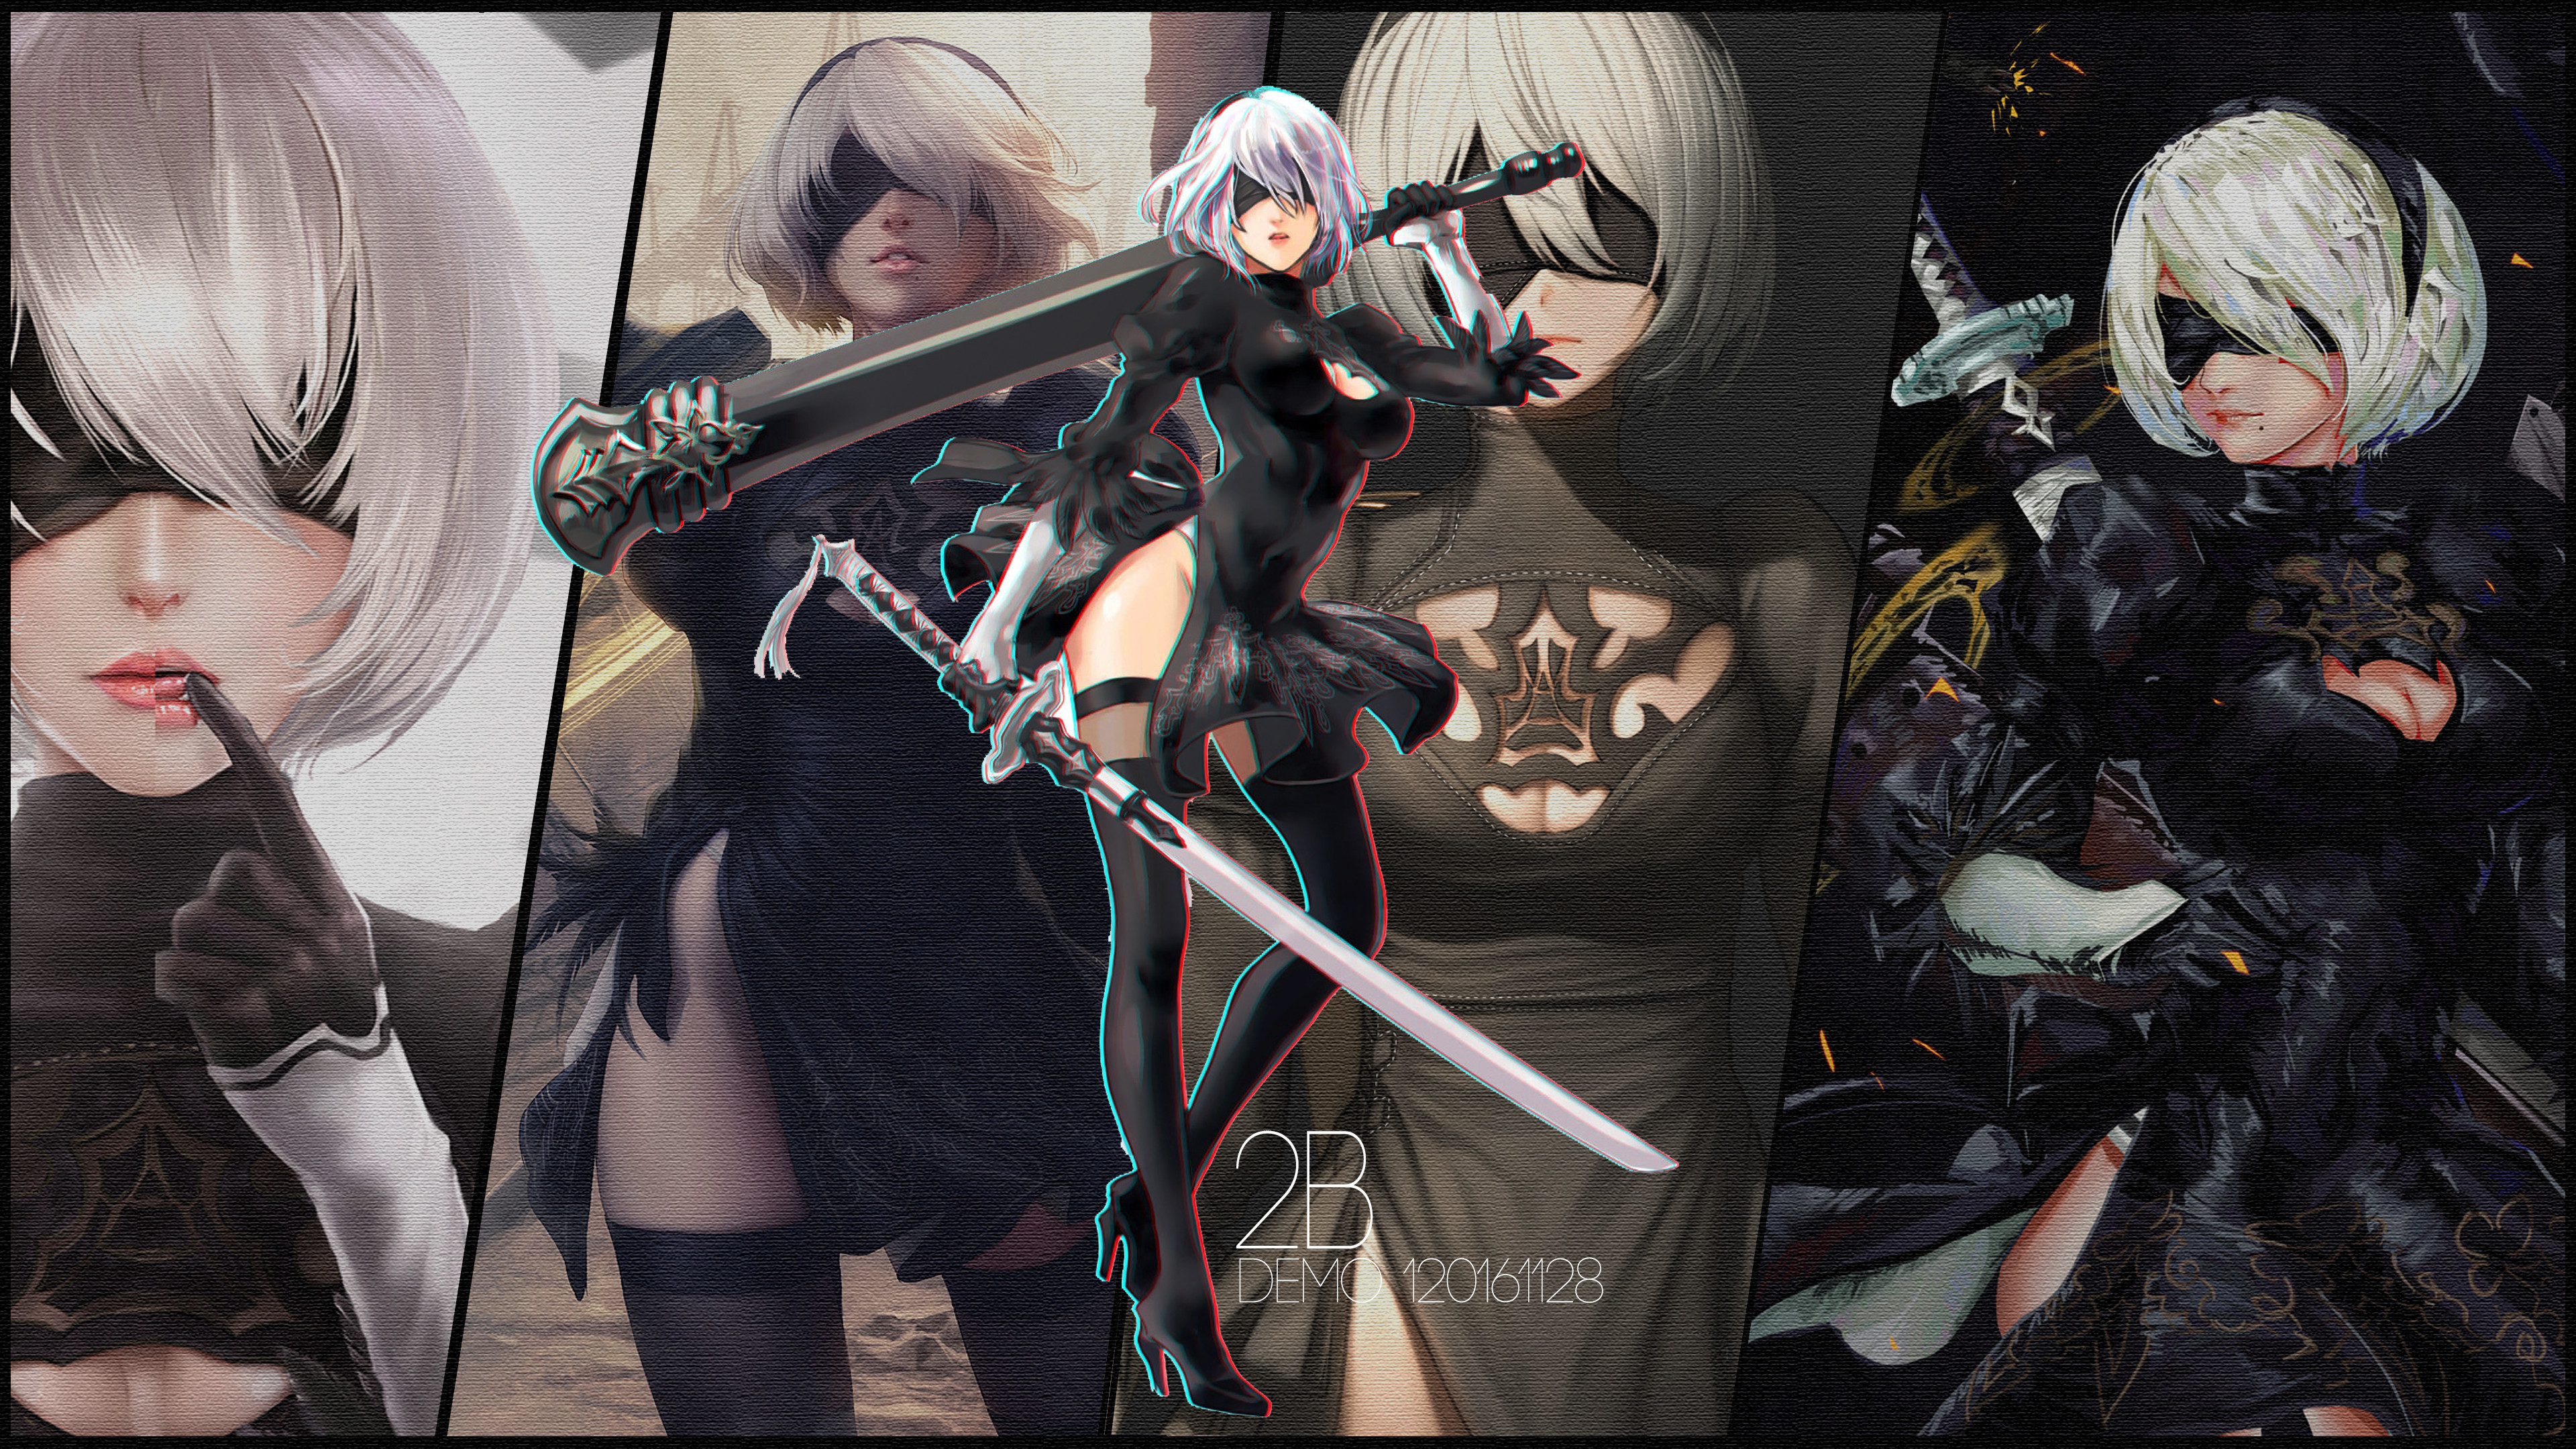 Nier Automata Fan Art Wallpaper 01 1920x1080: Nier Replicant Wallpaper (80+ Images